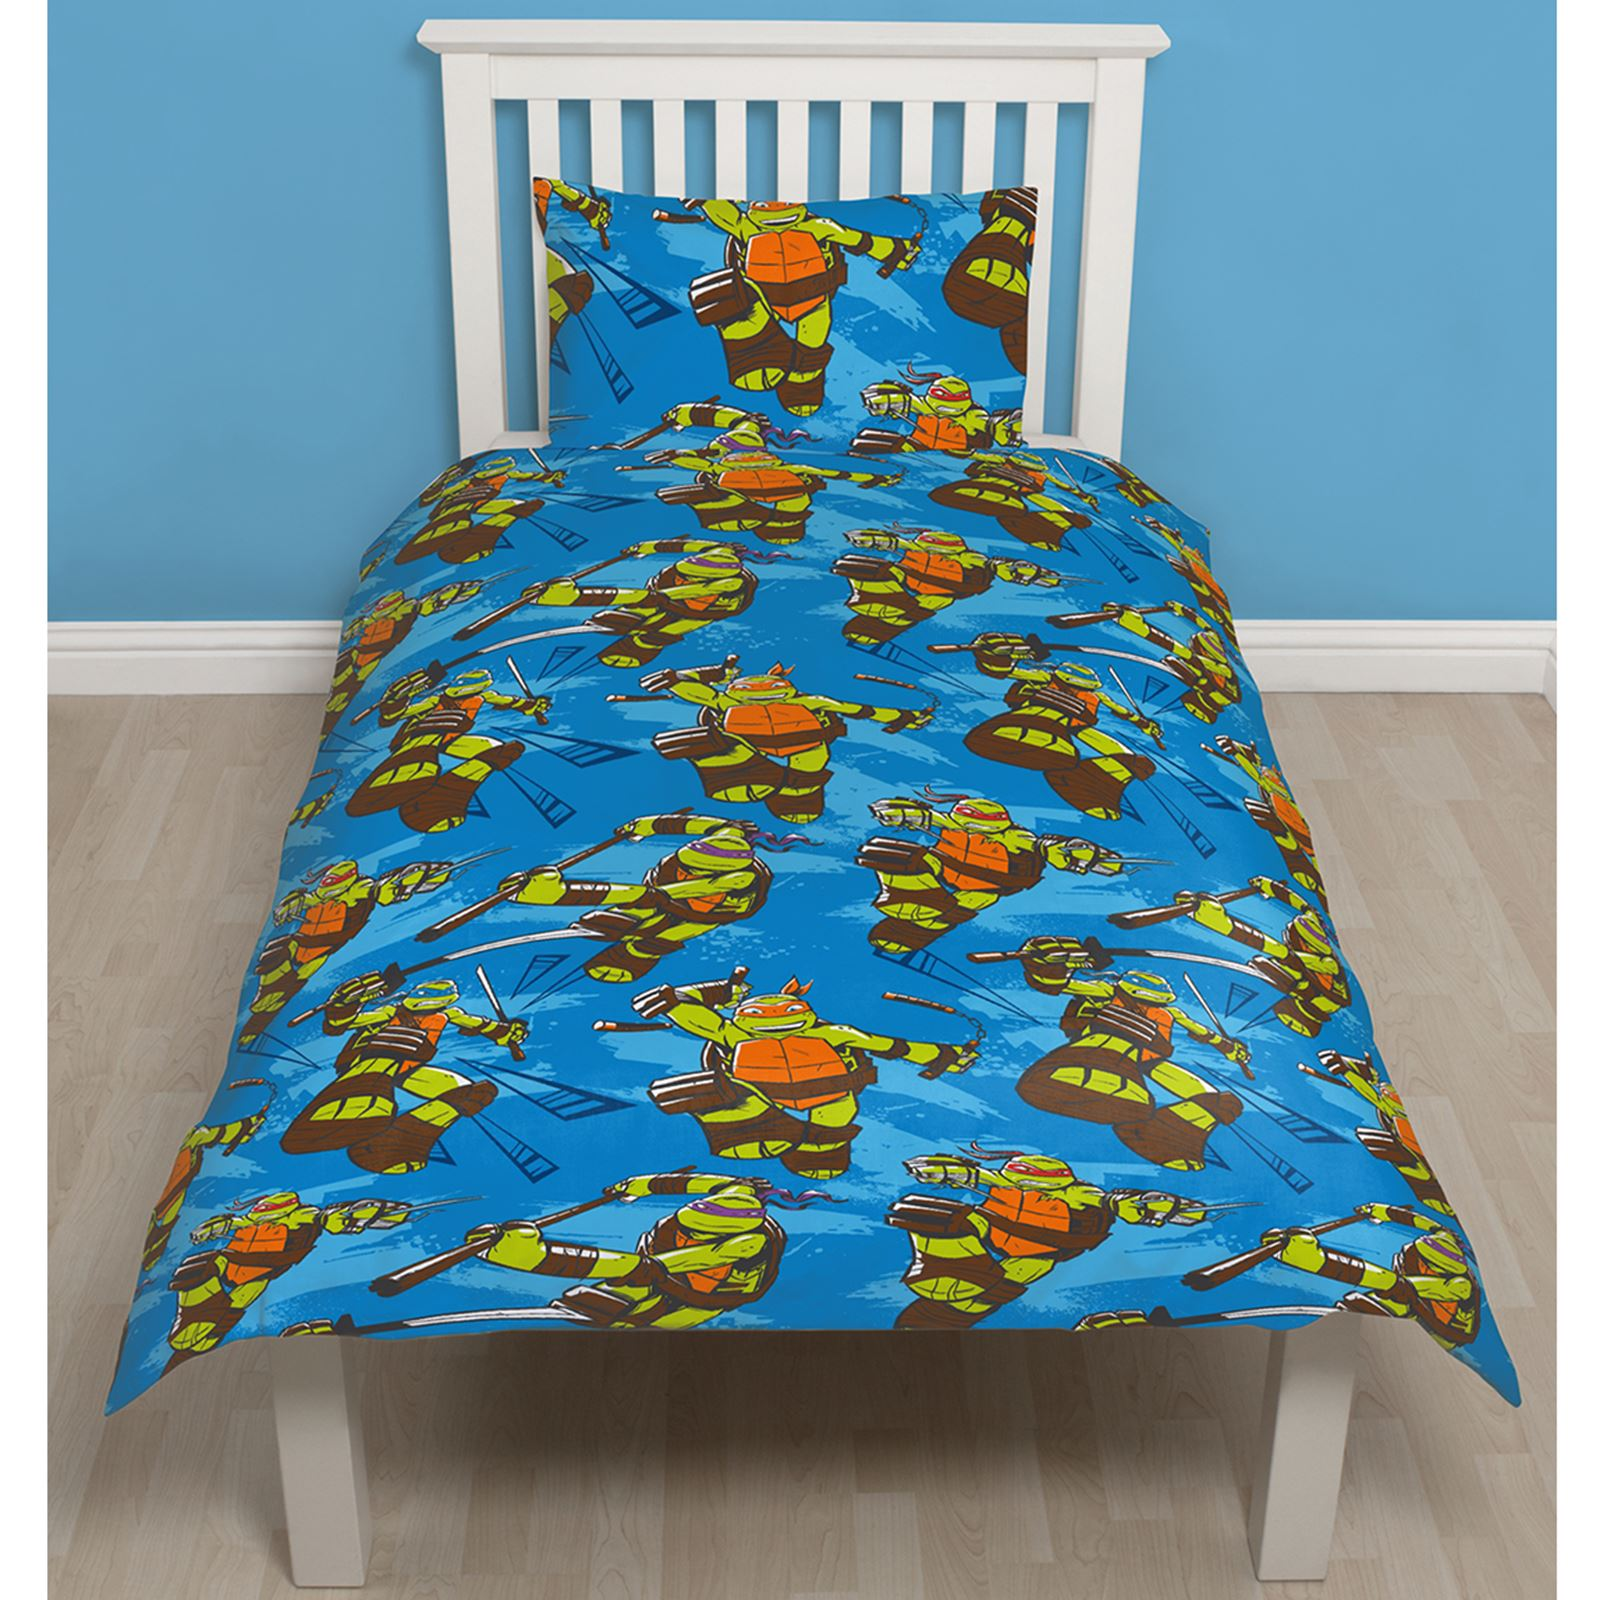 TEENAGE MUTANT NINJA TURTLES DUVET COVERS